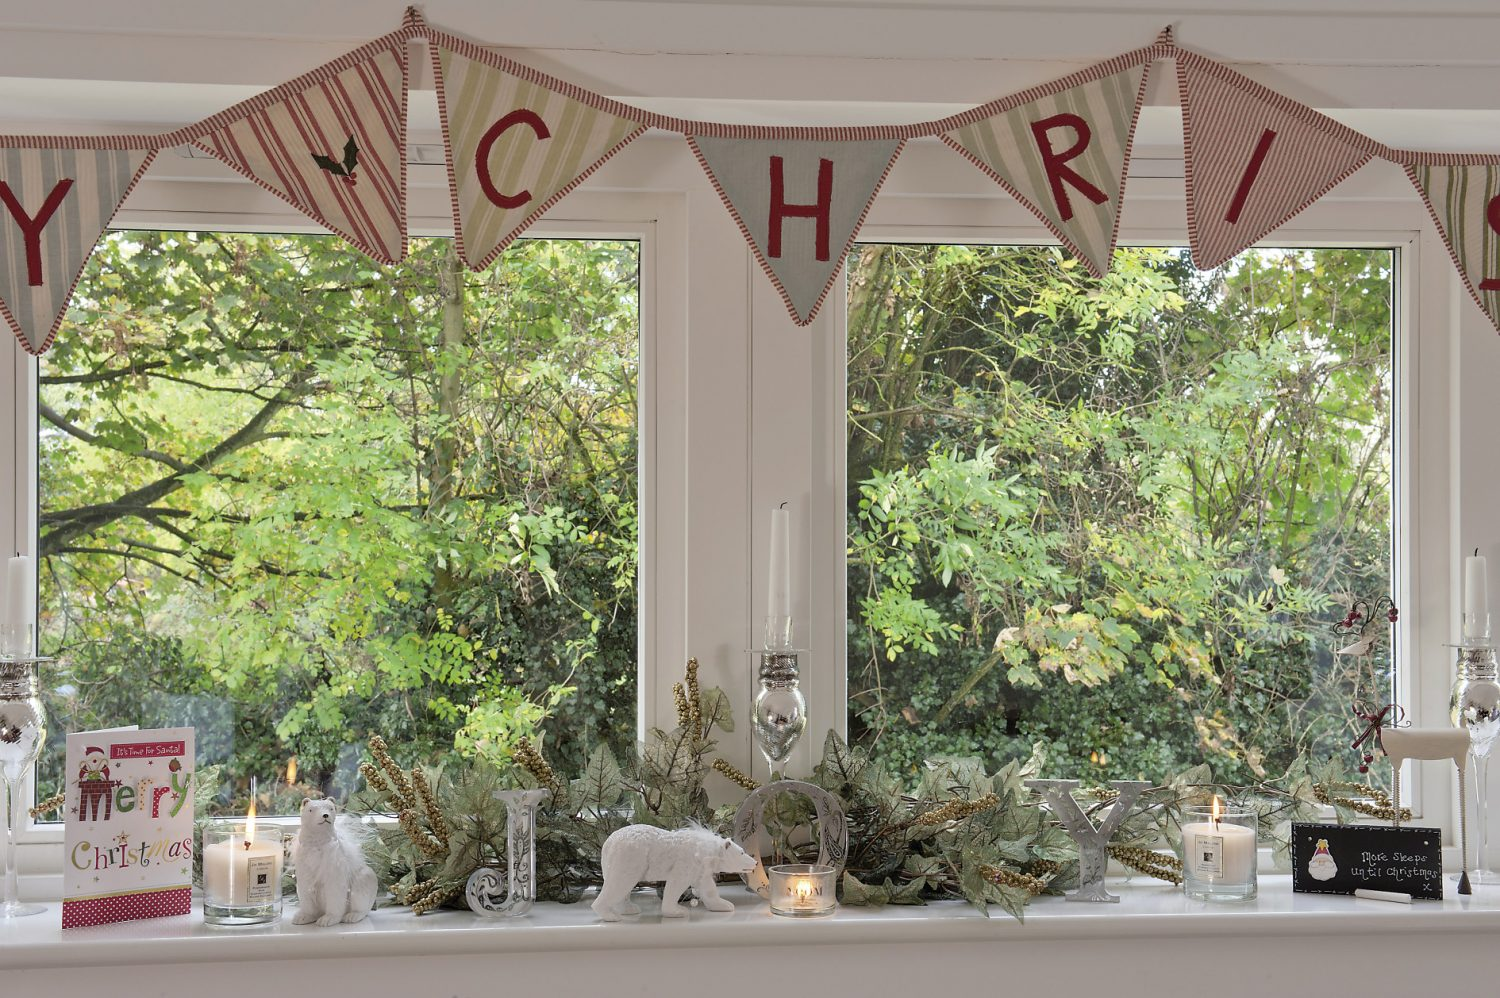 The sitting room window is draped with Christmas bunting, while on the counter in the kitchen, the festive baking books and bowls are at the ready